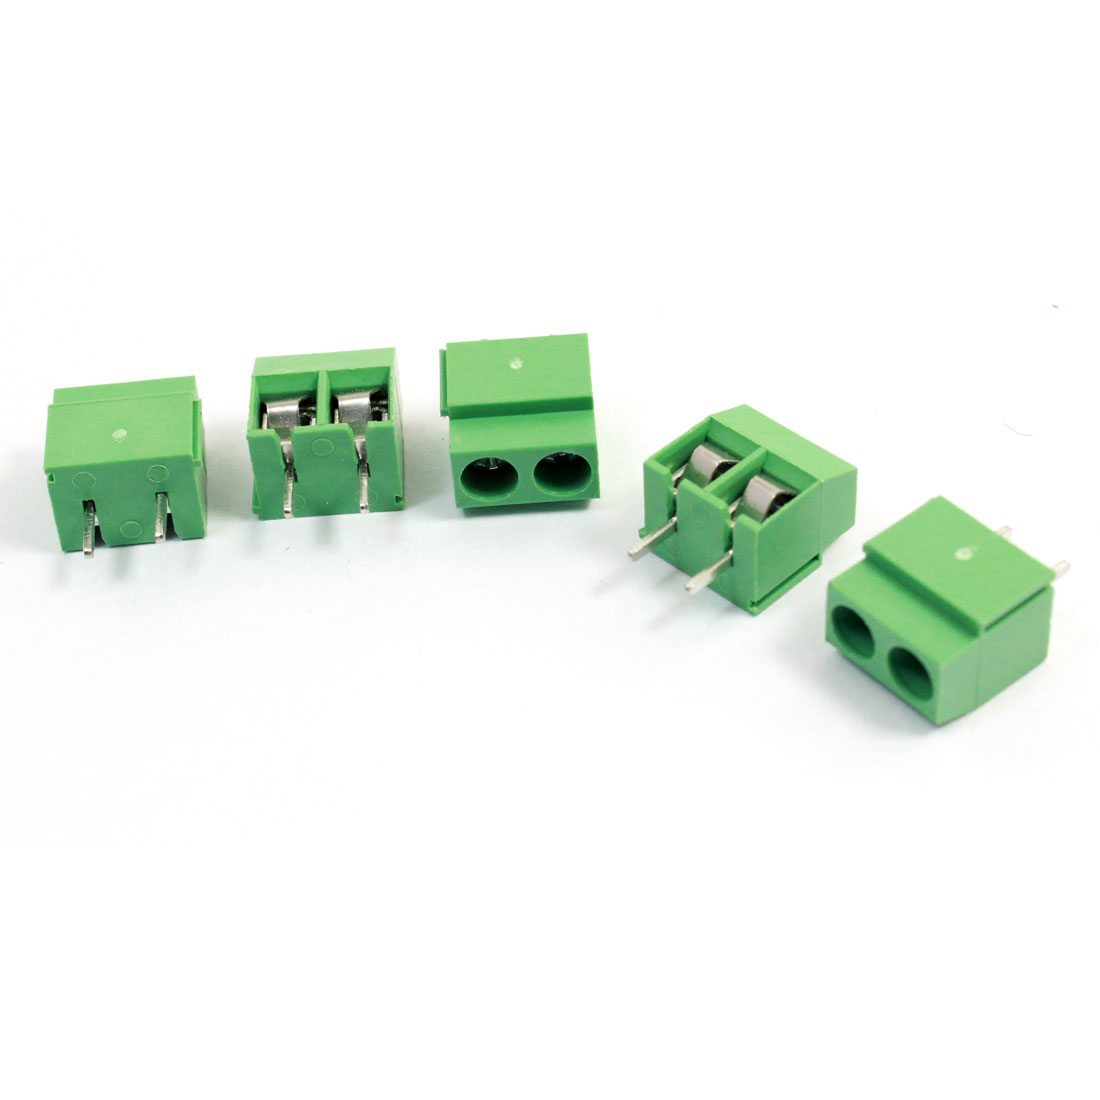 5 Pcs 126-2P 5mm Pitch Screw Terminal Block Connector 300V 10A